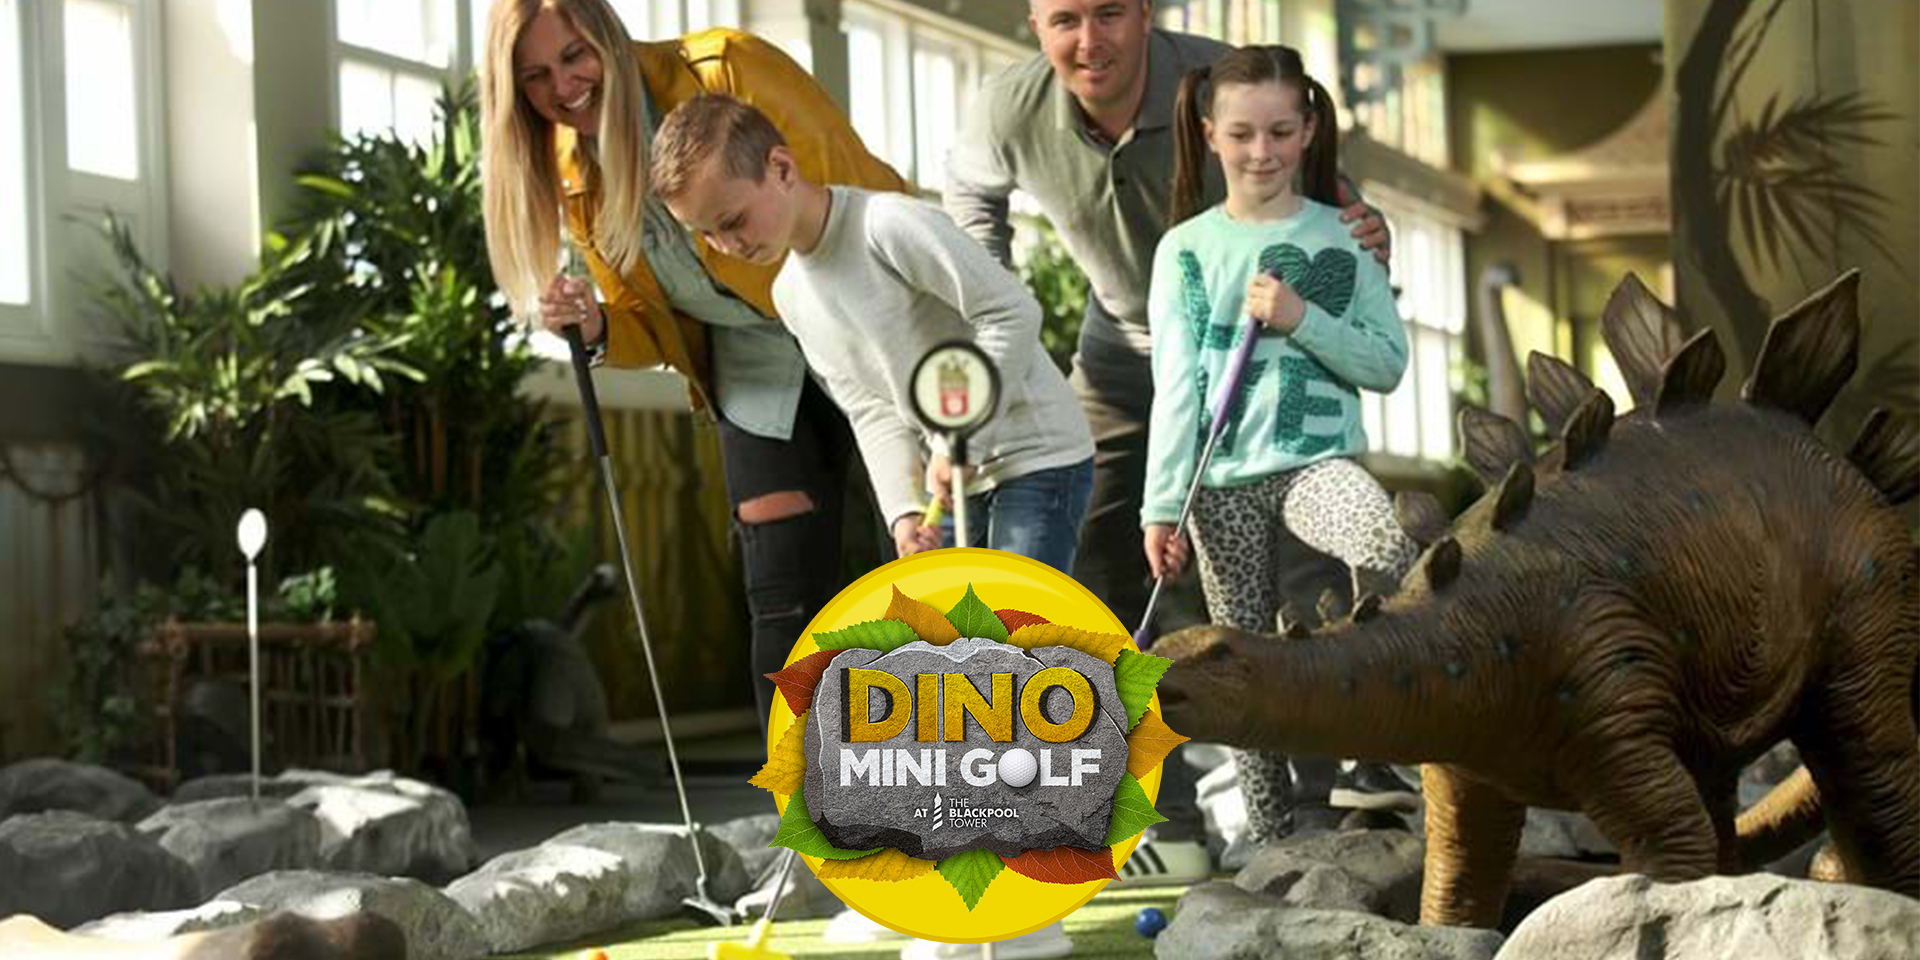 Family playing Dino Mini Golf at Blackpool Tower